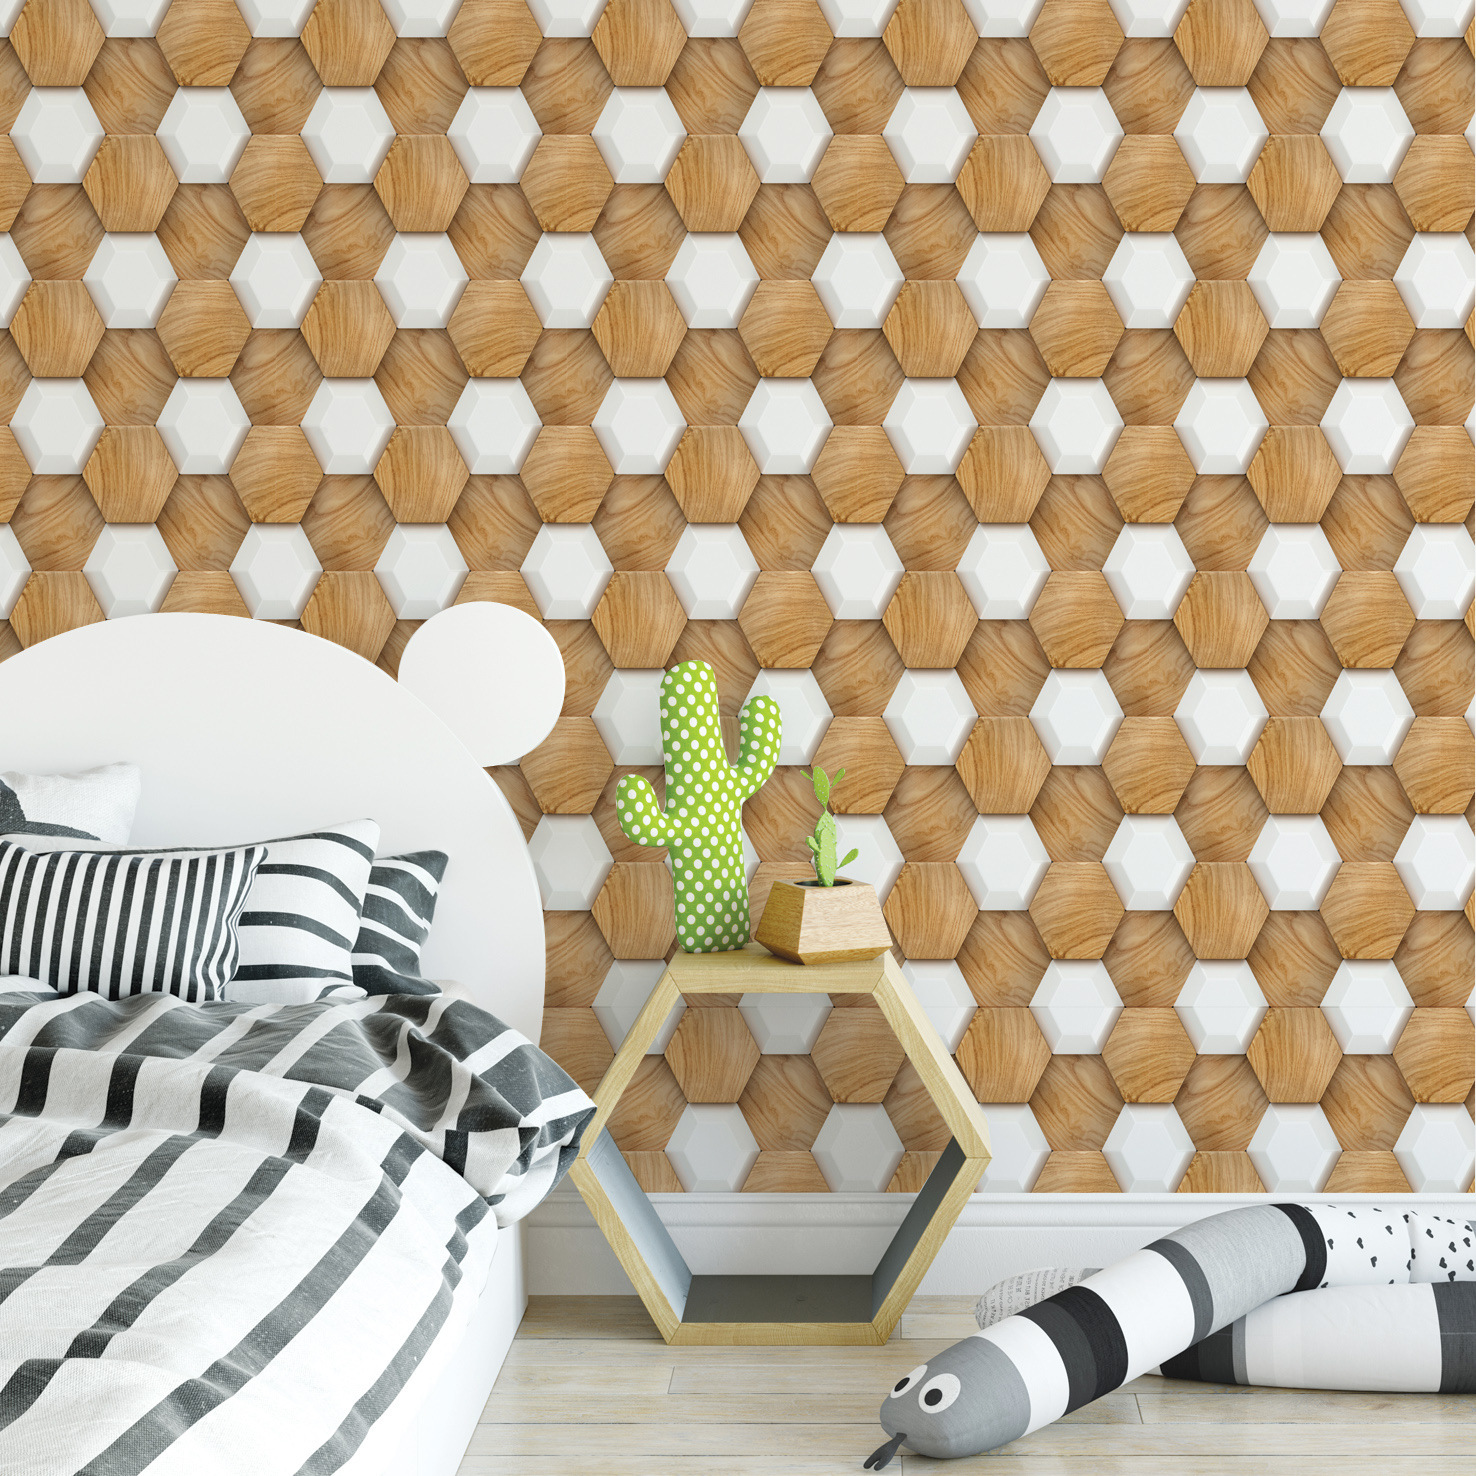 Waterproof DIY PVC Vinyl Self Adhesive Wallpaper for Kitchen Backsplash Tile Bathroom Living Room Bedroom Home Decor Wall Paper in Wallpapers from Home Improvement